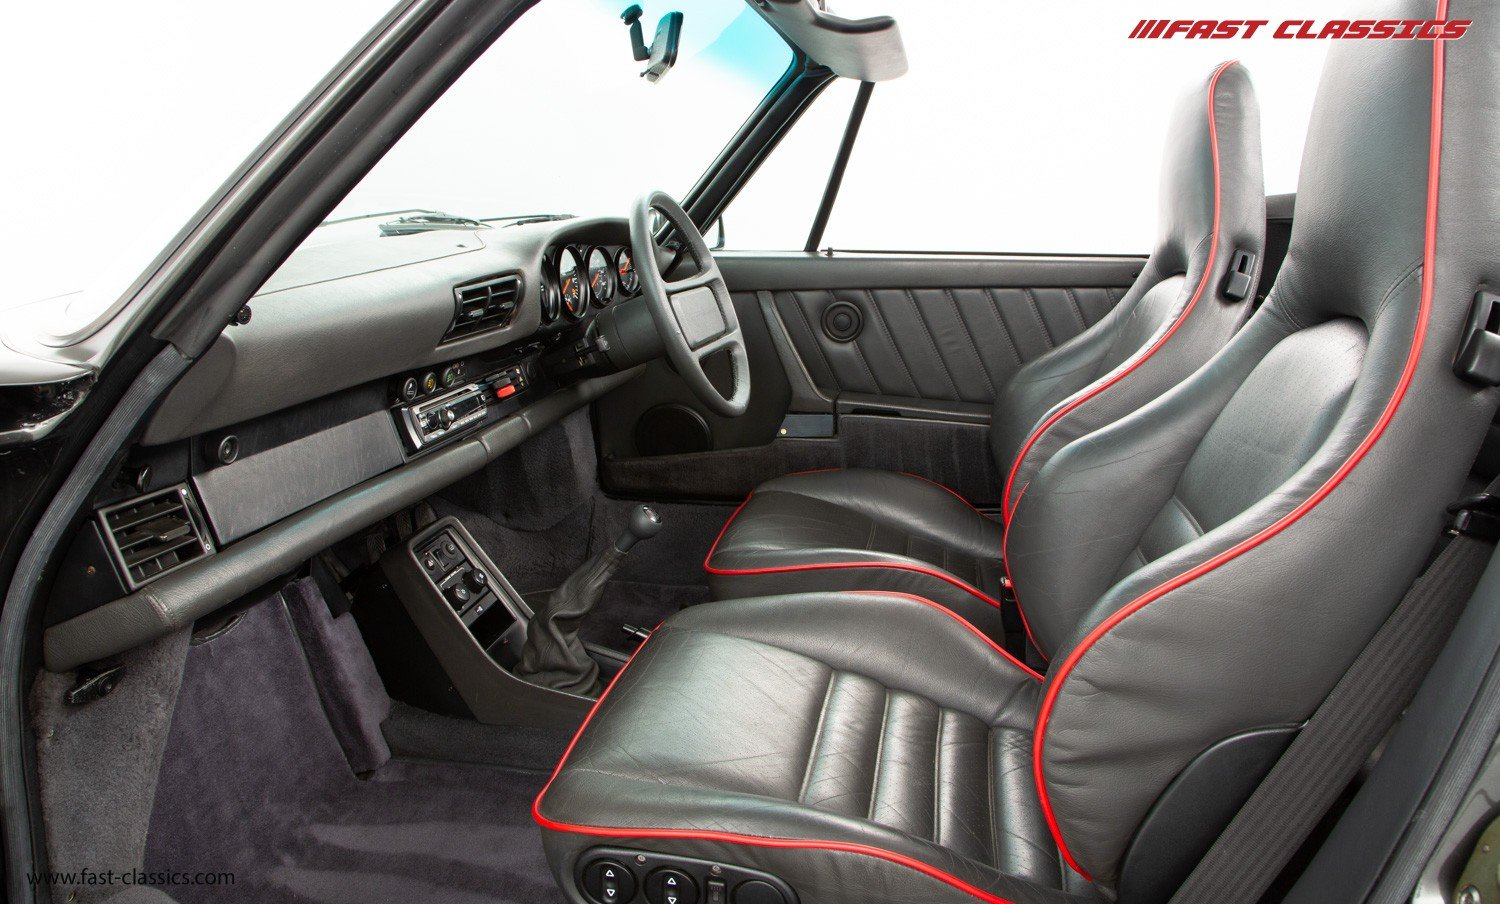 1990 PORSCHE 911 TURBO CABR // SLATE GREY // G50 GEARBOX  For Sale (picture 5 of 6)